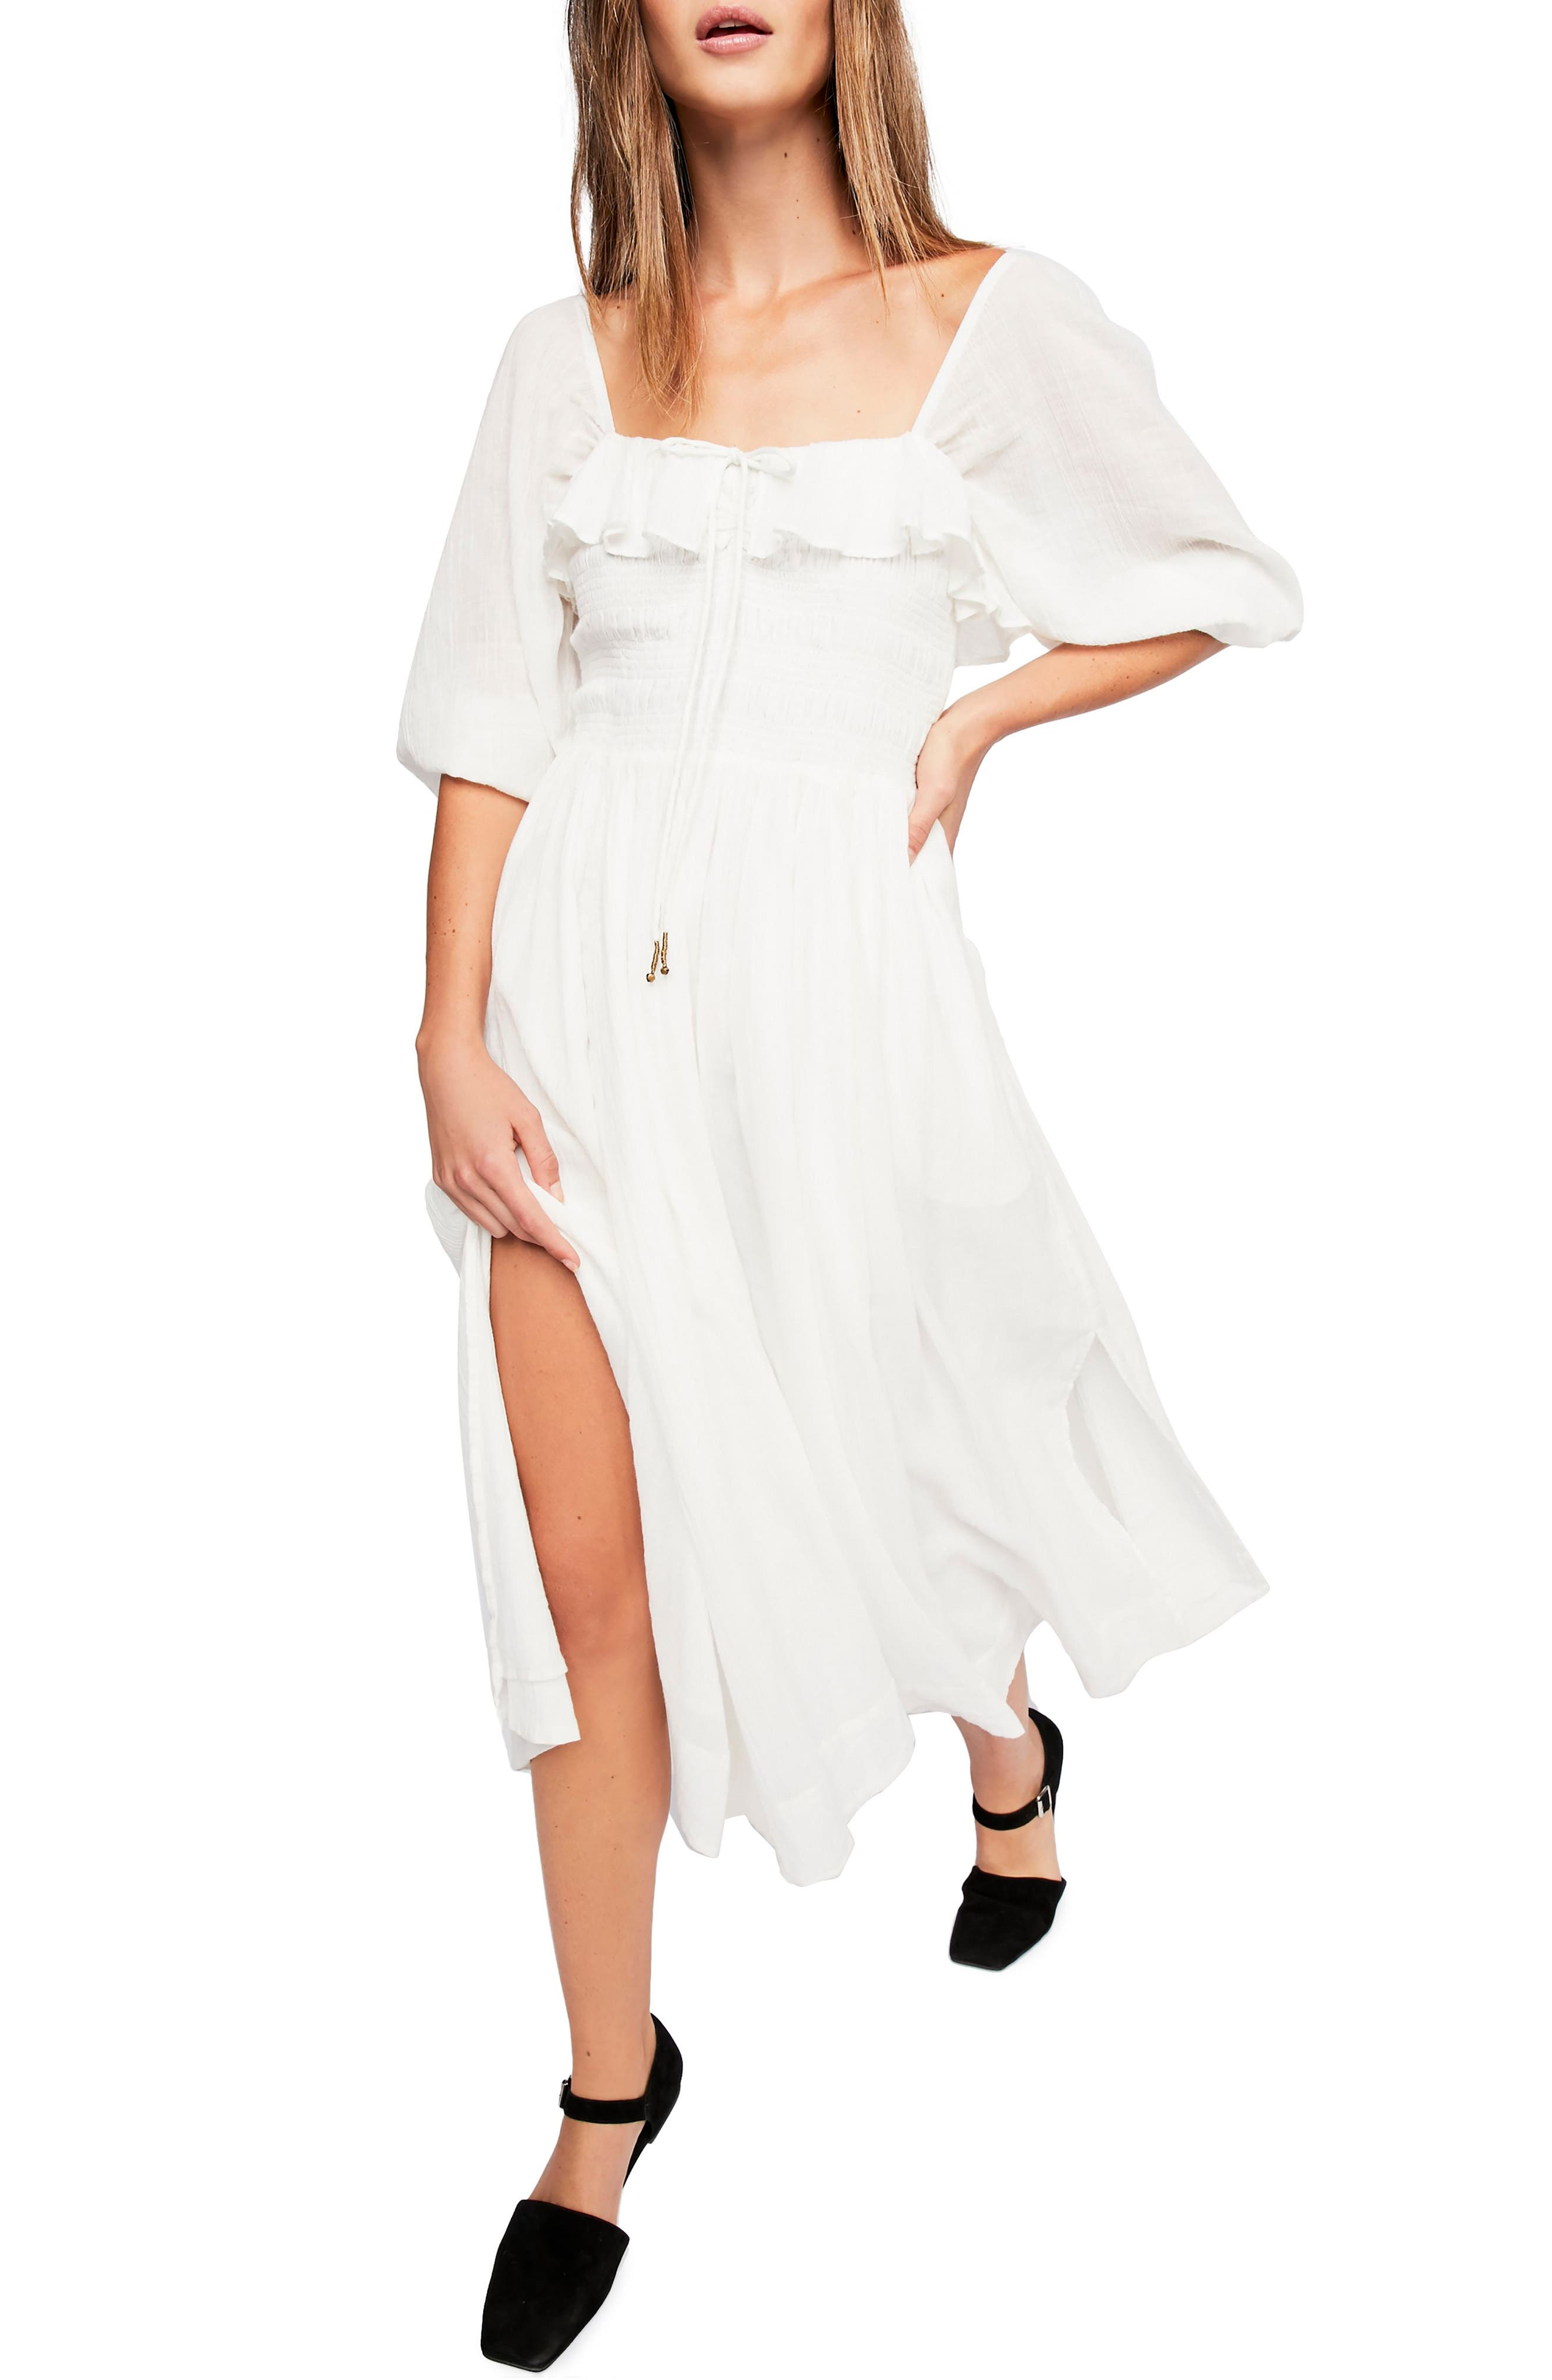 Endless Summer By Free People Ruffle Maxi Dress, Ivory